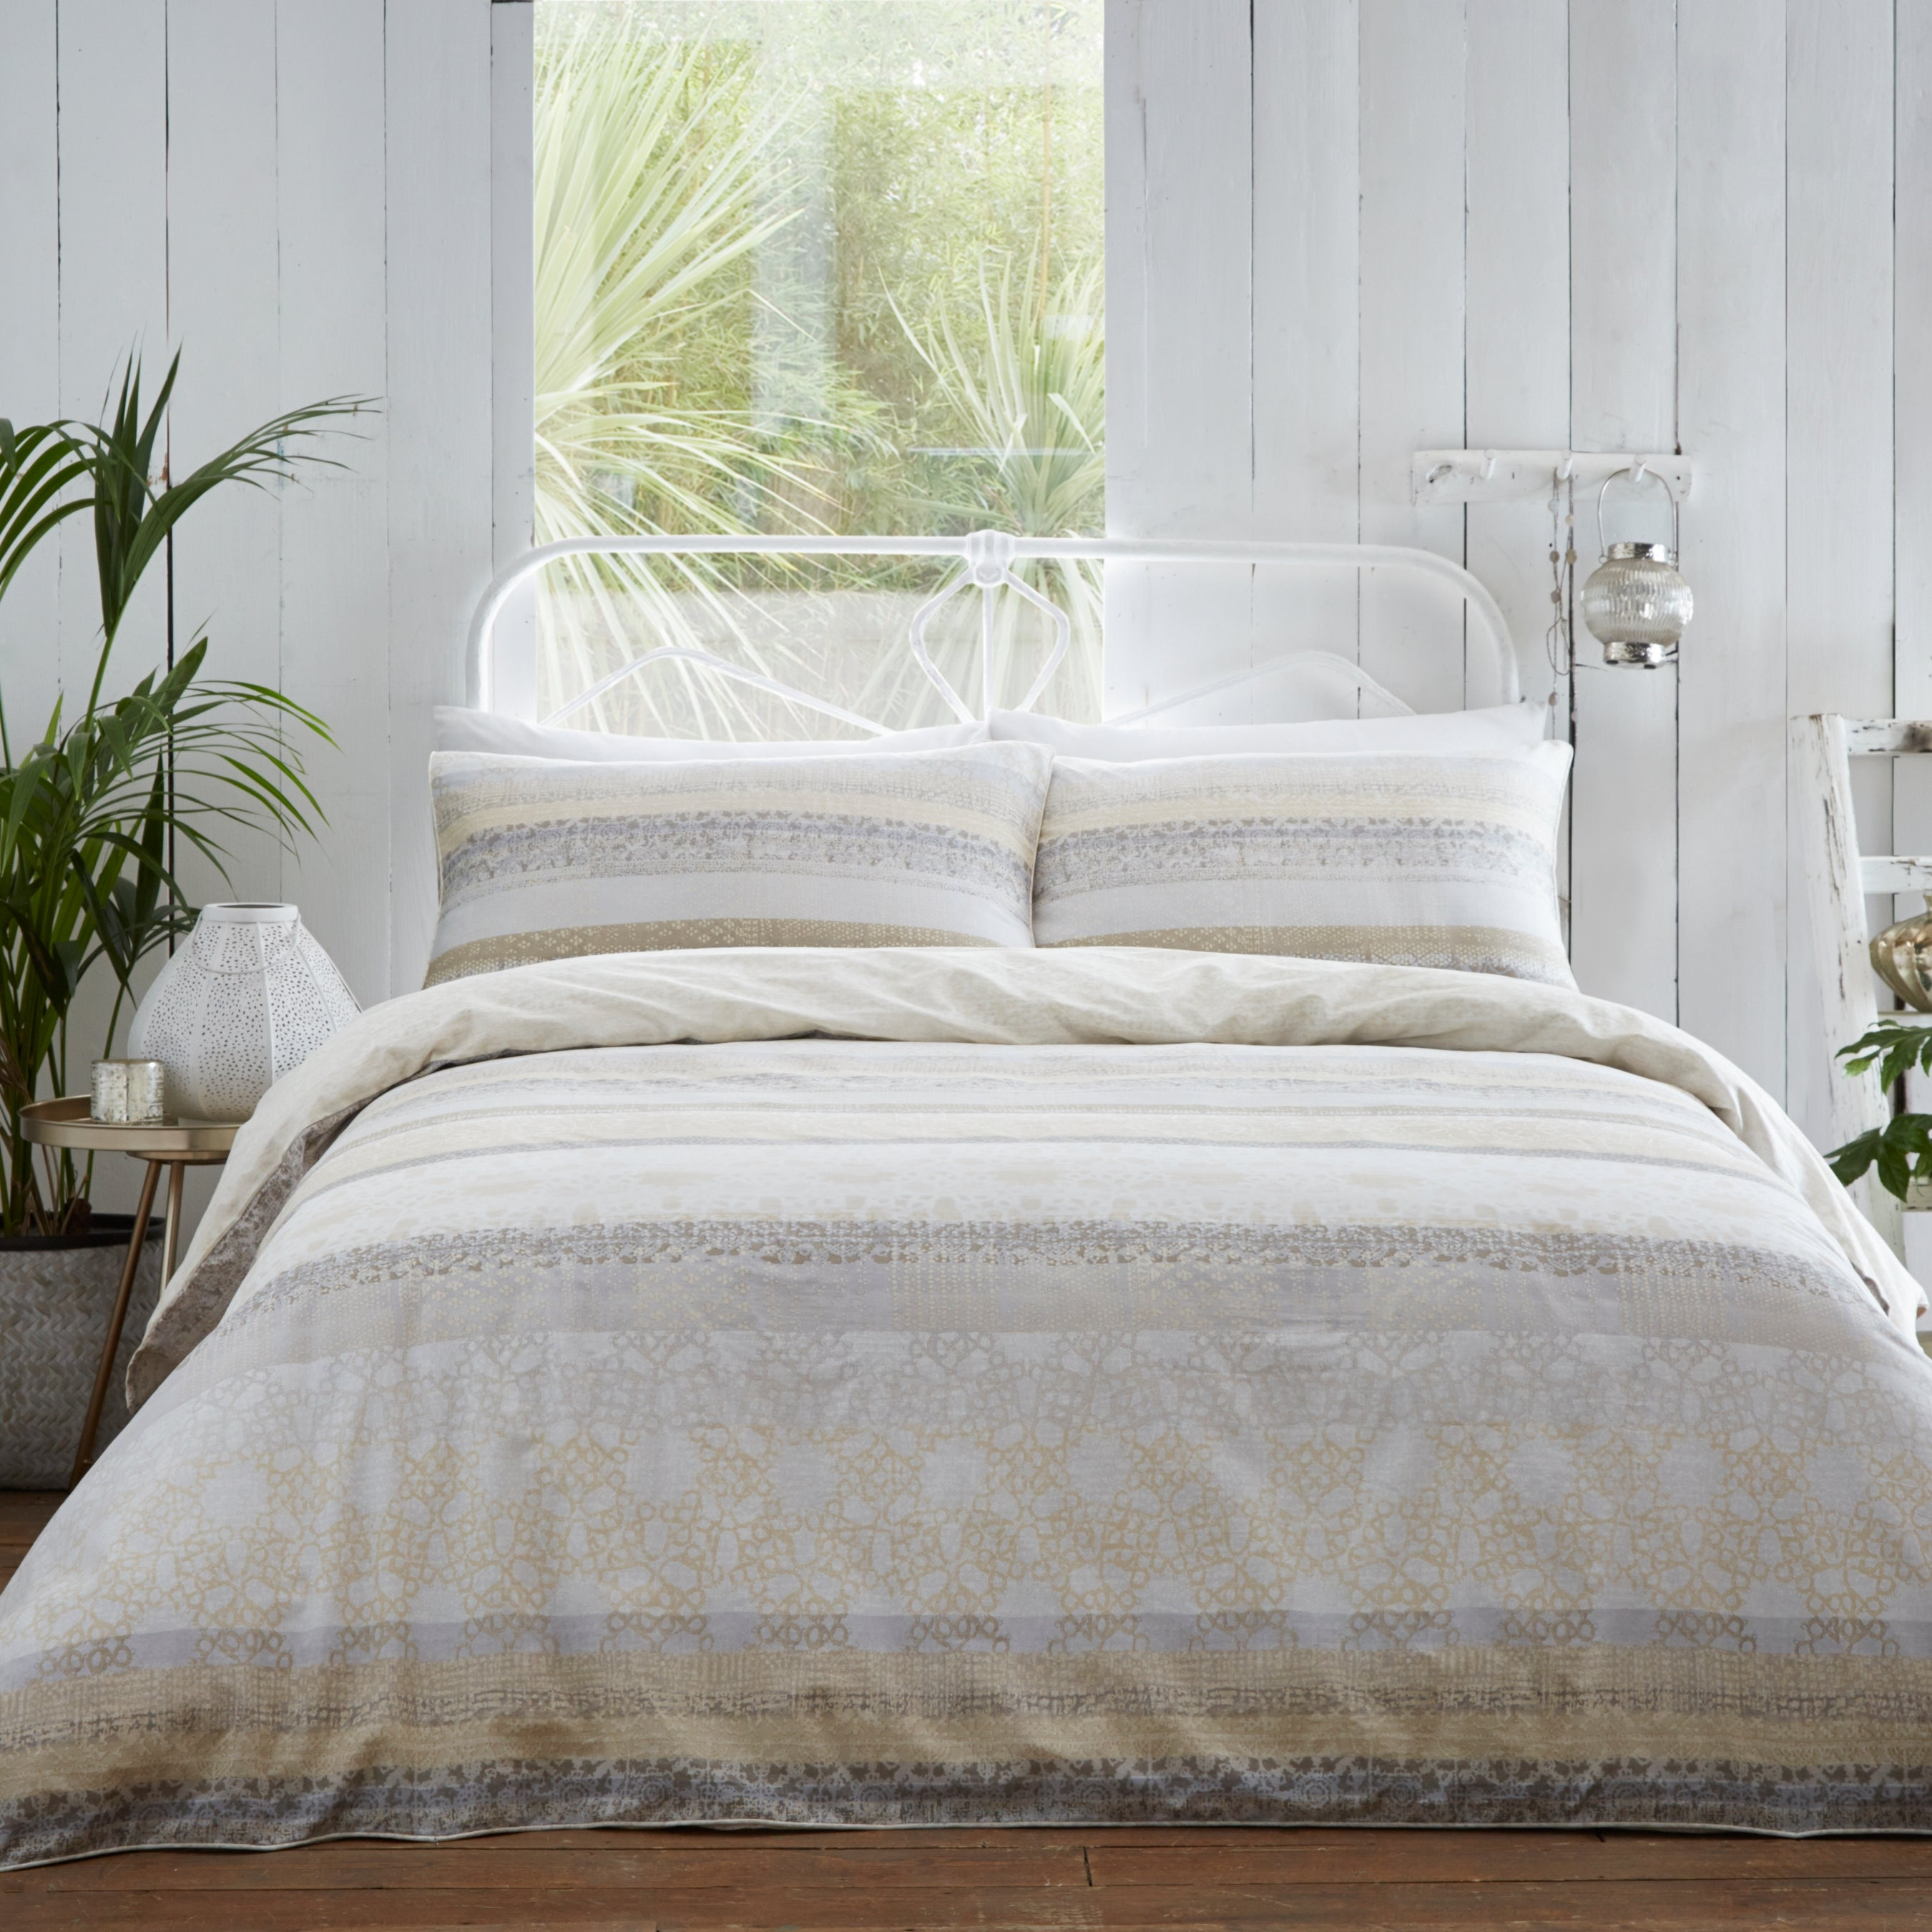 Lamina Natural Cotton Duvet Cover Set